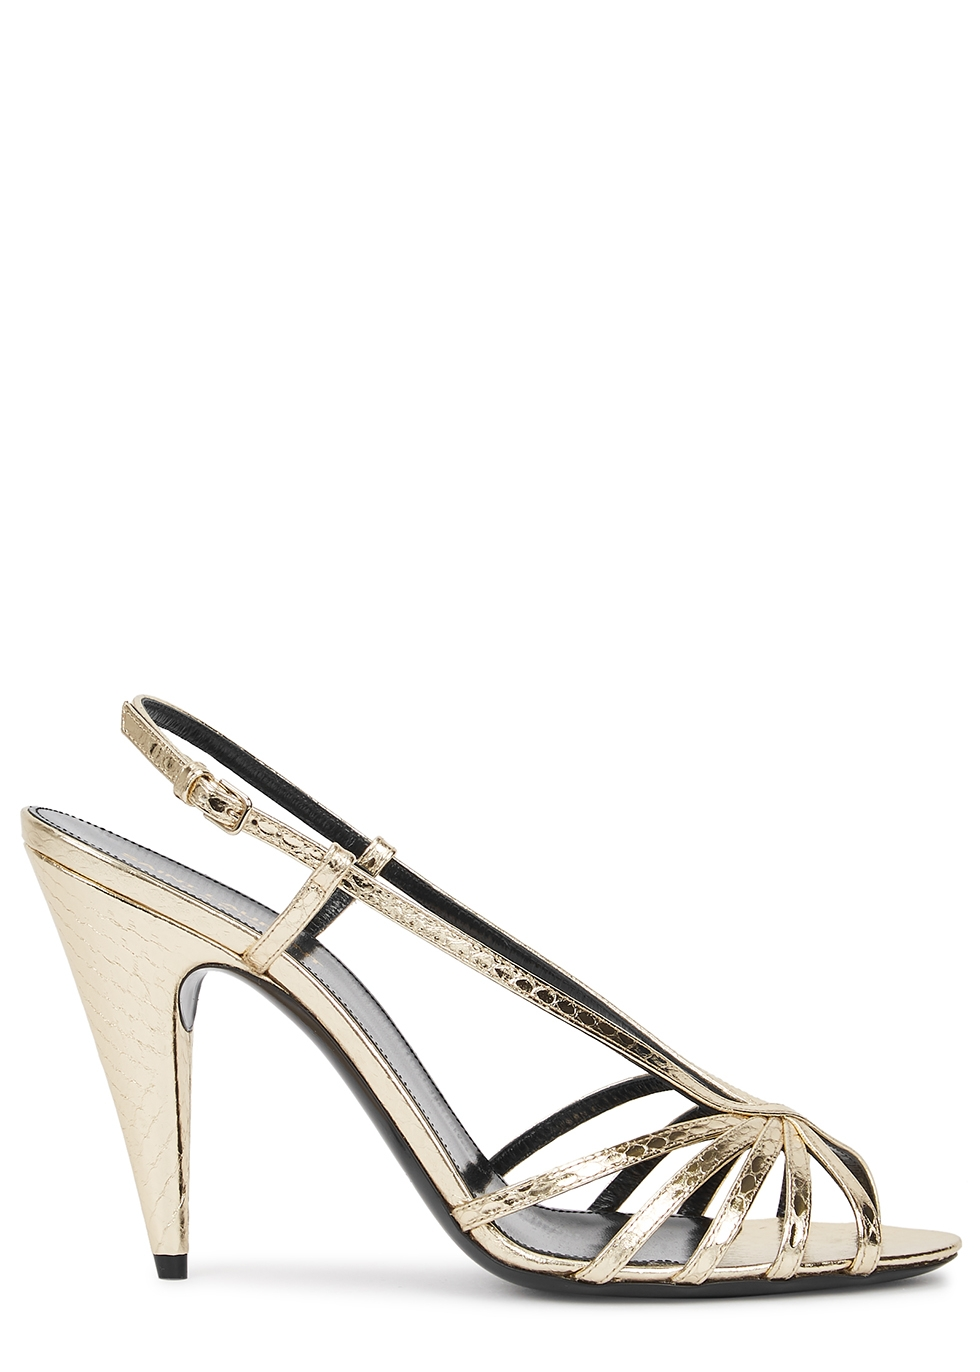 Romy 95 gold ayers sandals